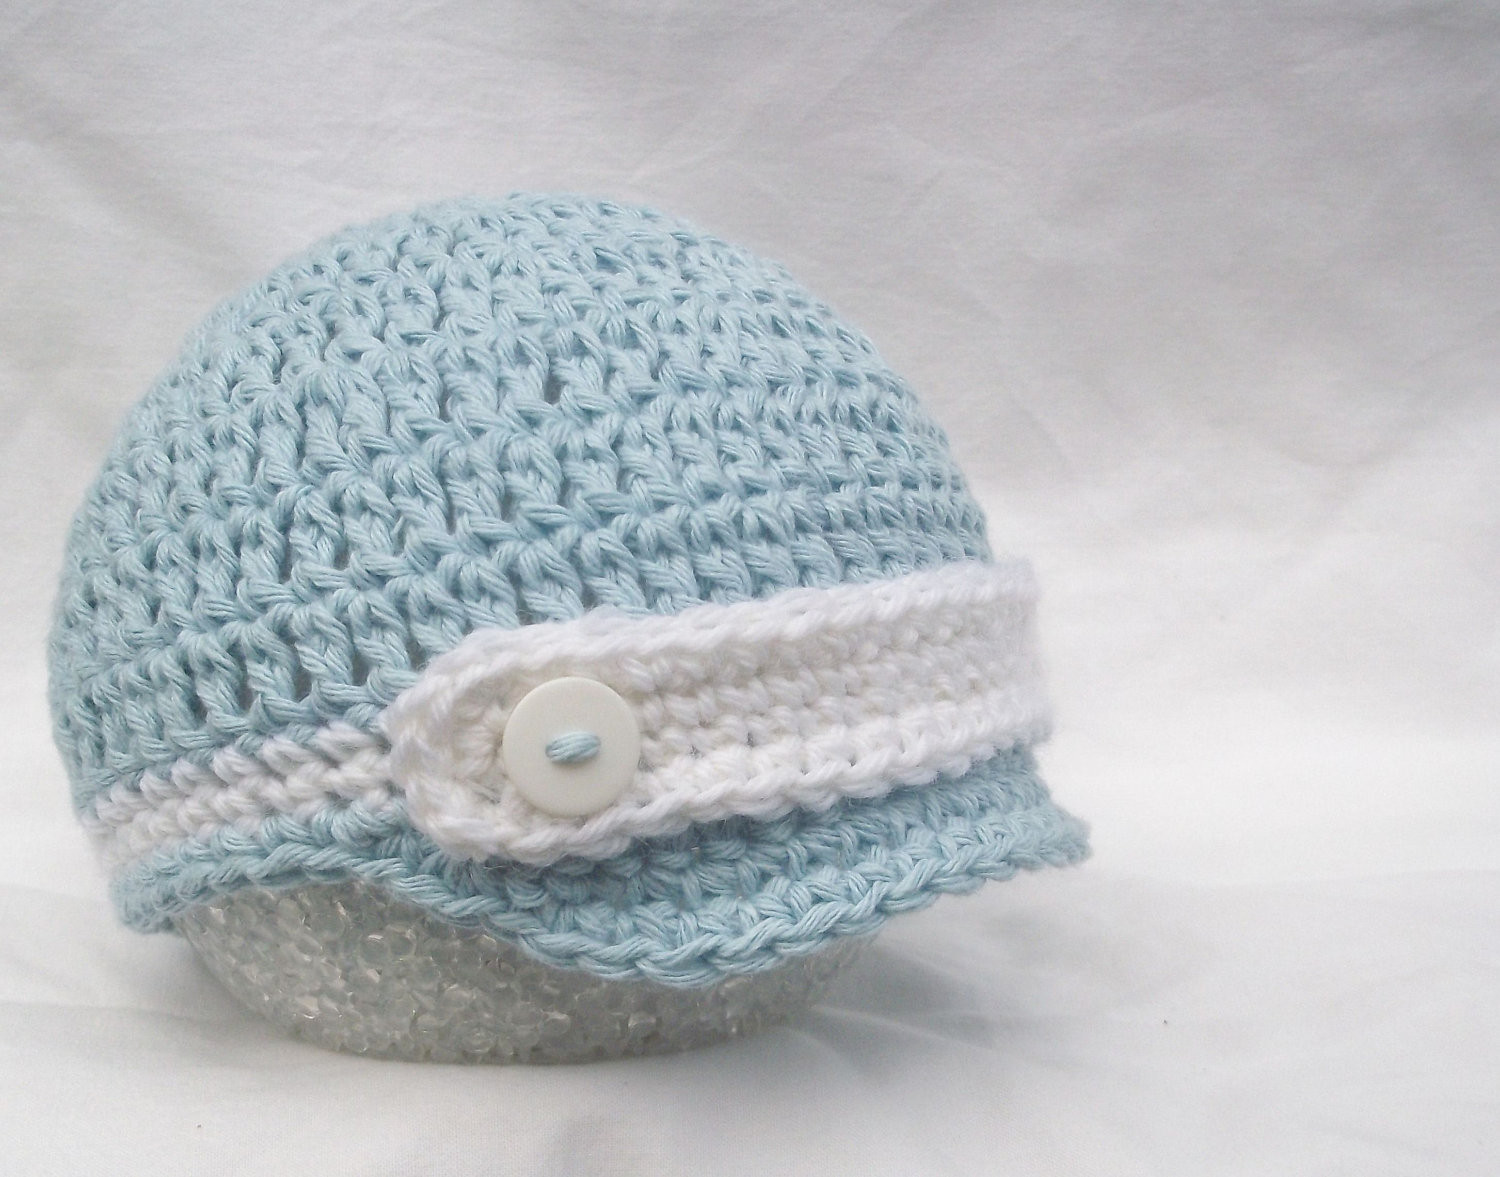 Beautiful Free Crochet Patterns for Newborn Baby Hats Free Crochet Infant Hat Patterns Of Luxury Baby Hat Crochet Pattern Modern Homemakers Free Crochet Infant Hat Patterns